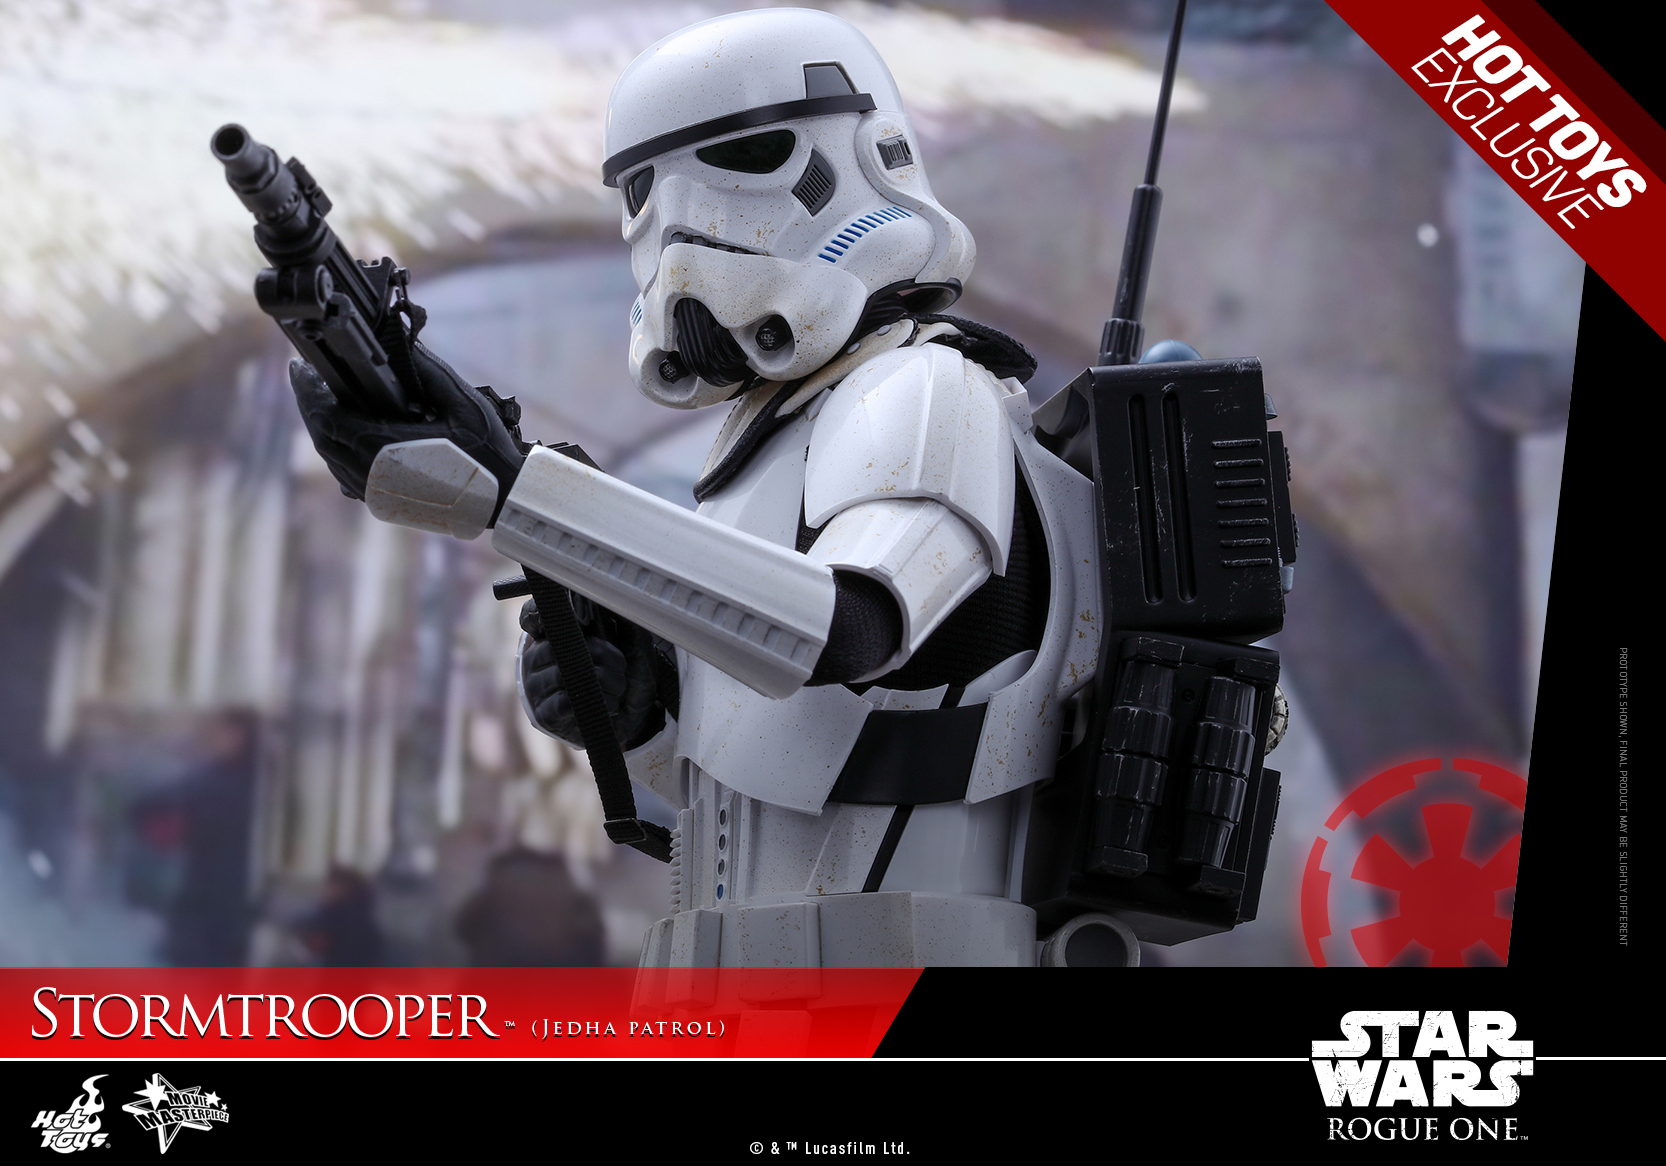 201609_hot-toys-rogue-one-stormtrooper-jedha-patrol-collectible-6